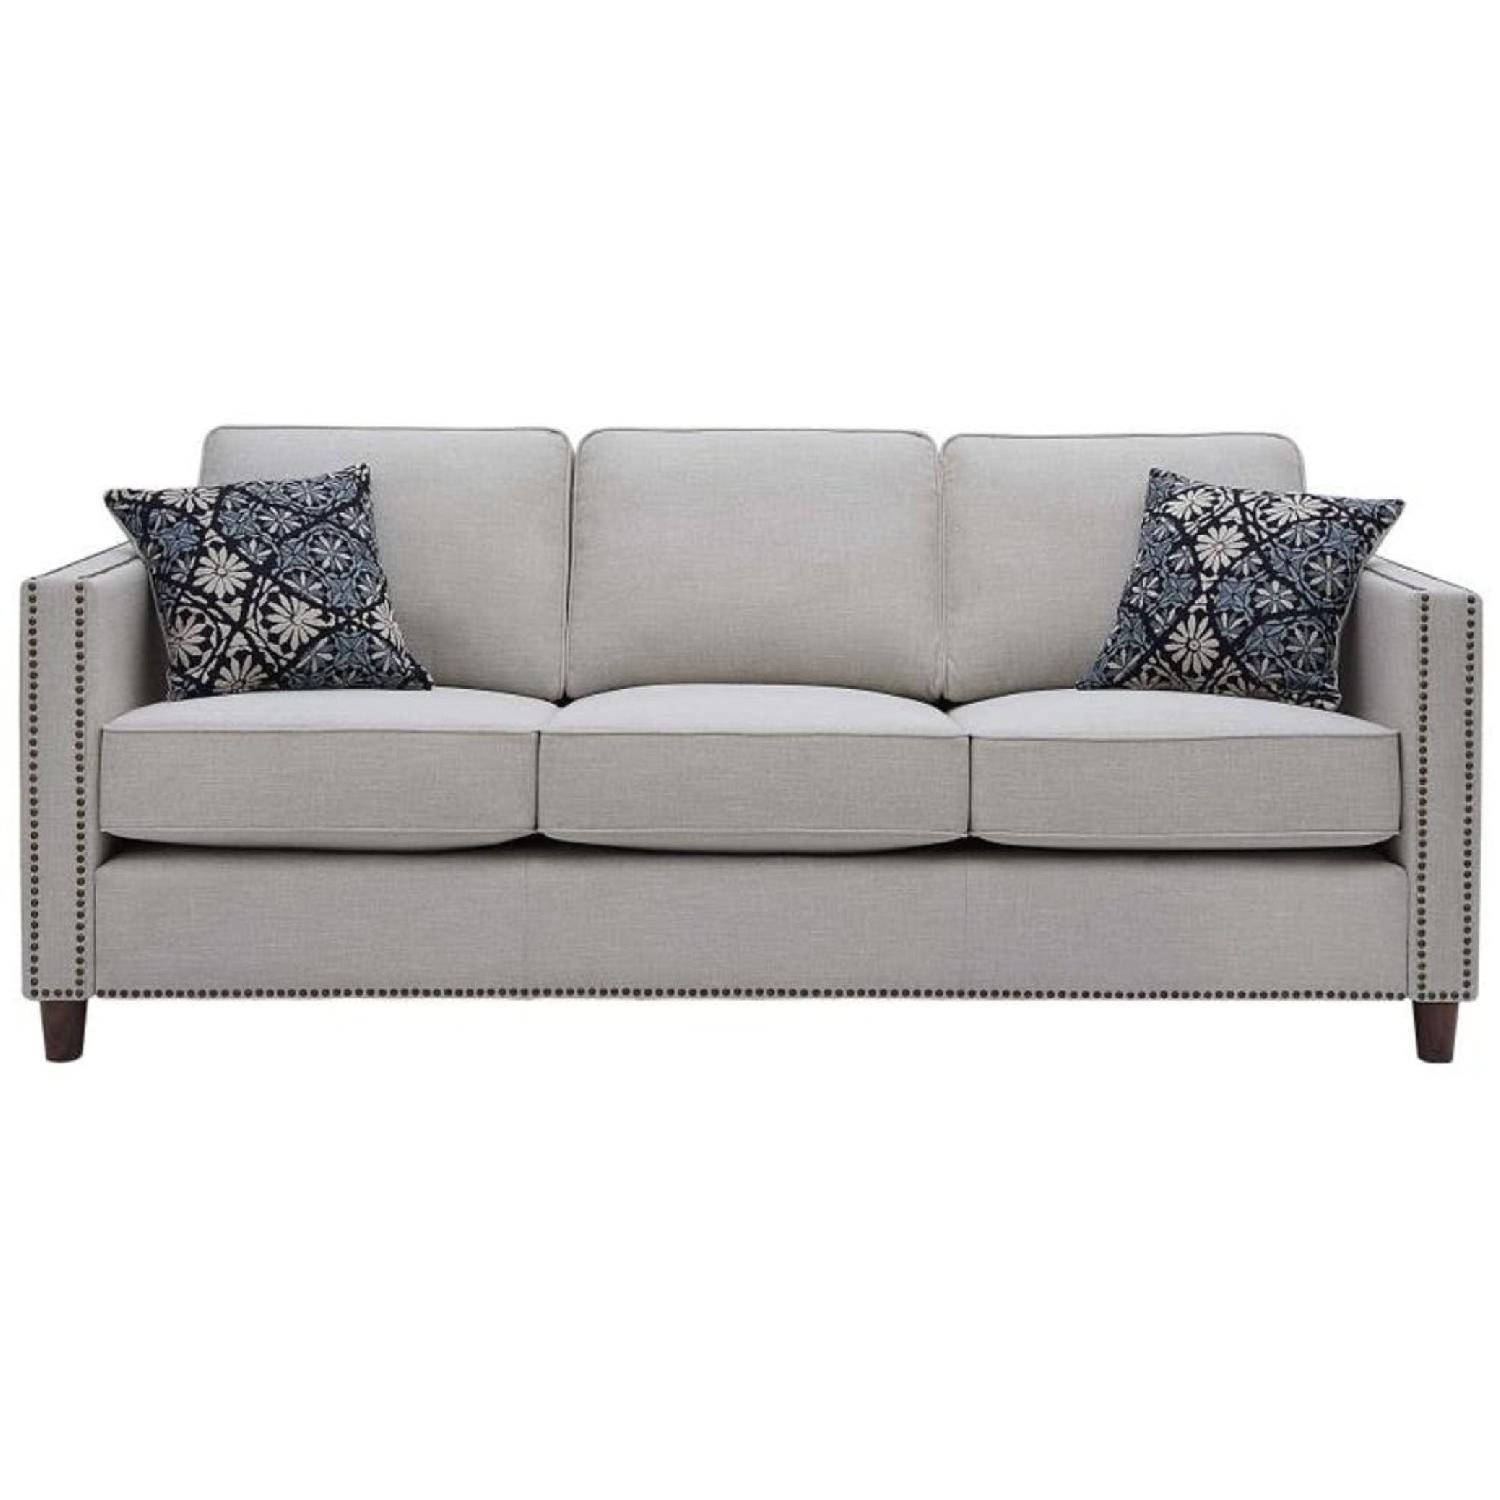 Putty Color Modern Sofa w/ Nailheads